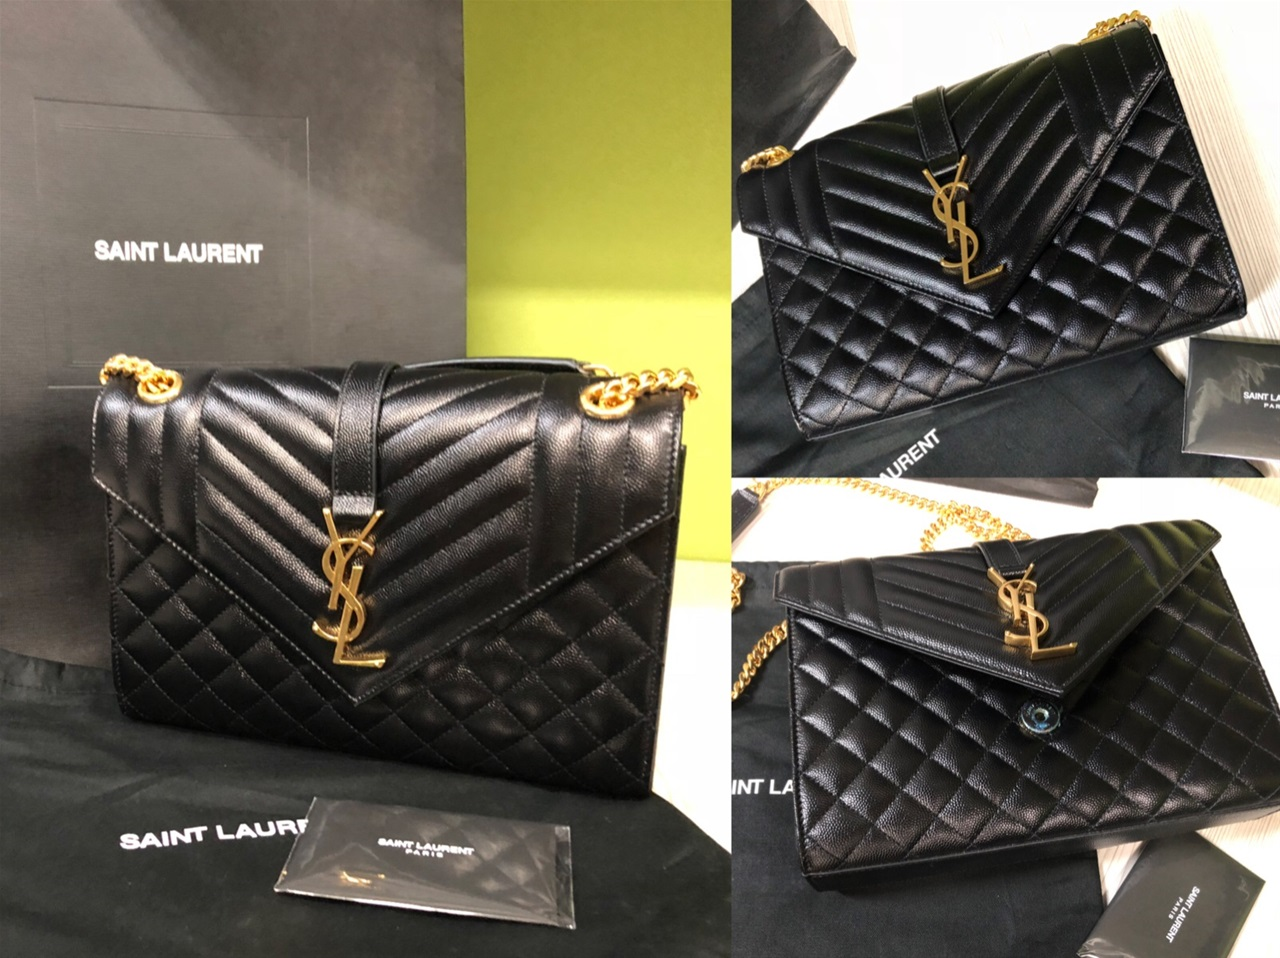 708c6d65 Yves Saint Laurent - www.shopmyluxurybag.com